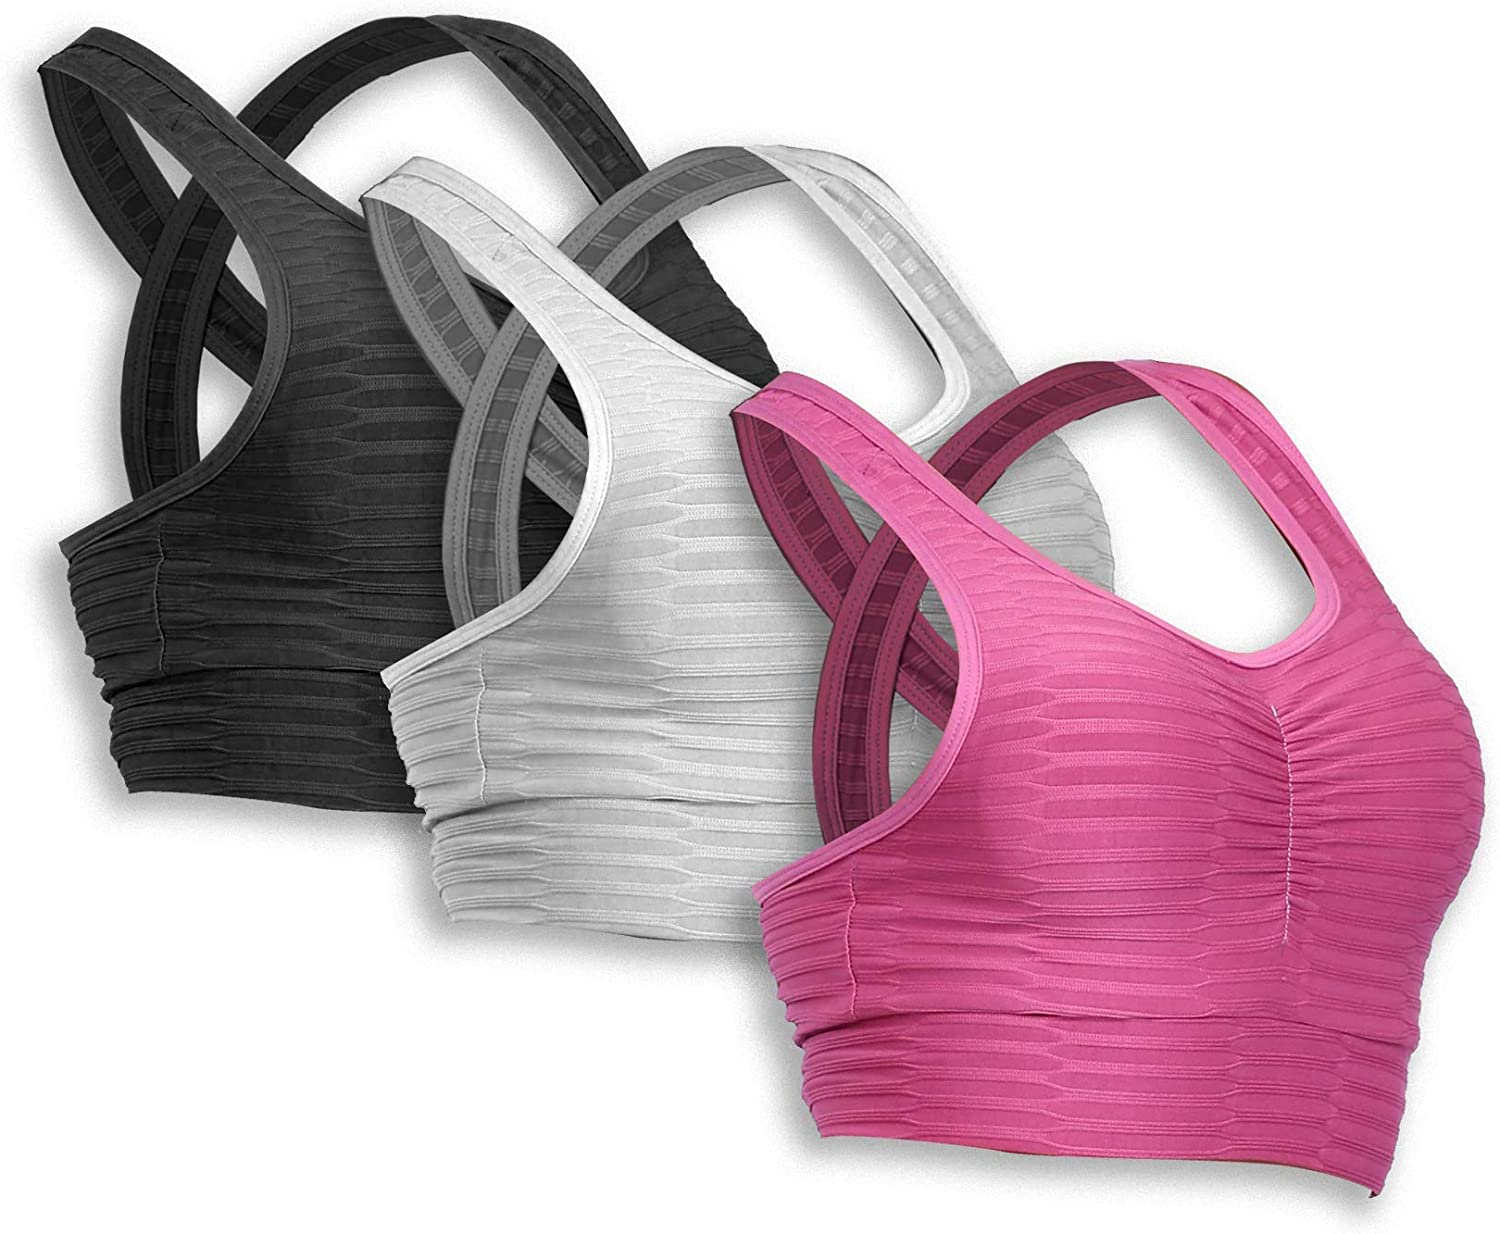 Pack of 3 Removable Cup C Crush Women/'s Ruched Textured Sports Bra Support for Fitness